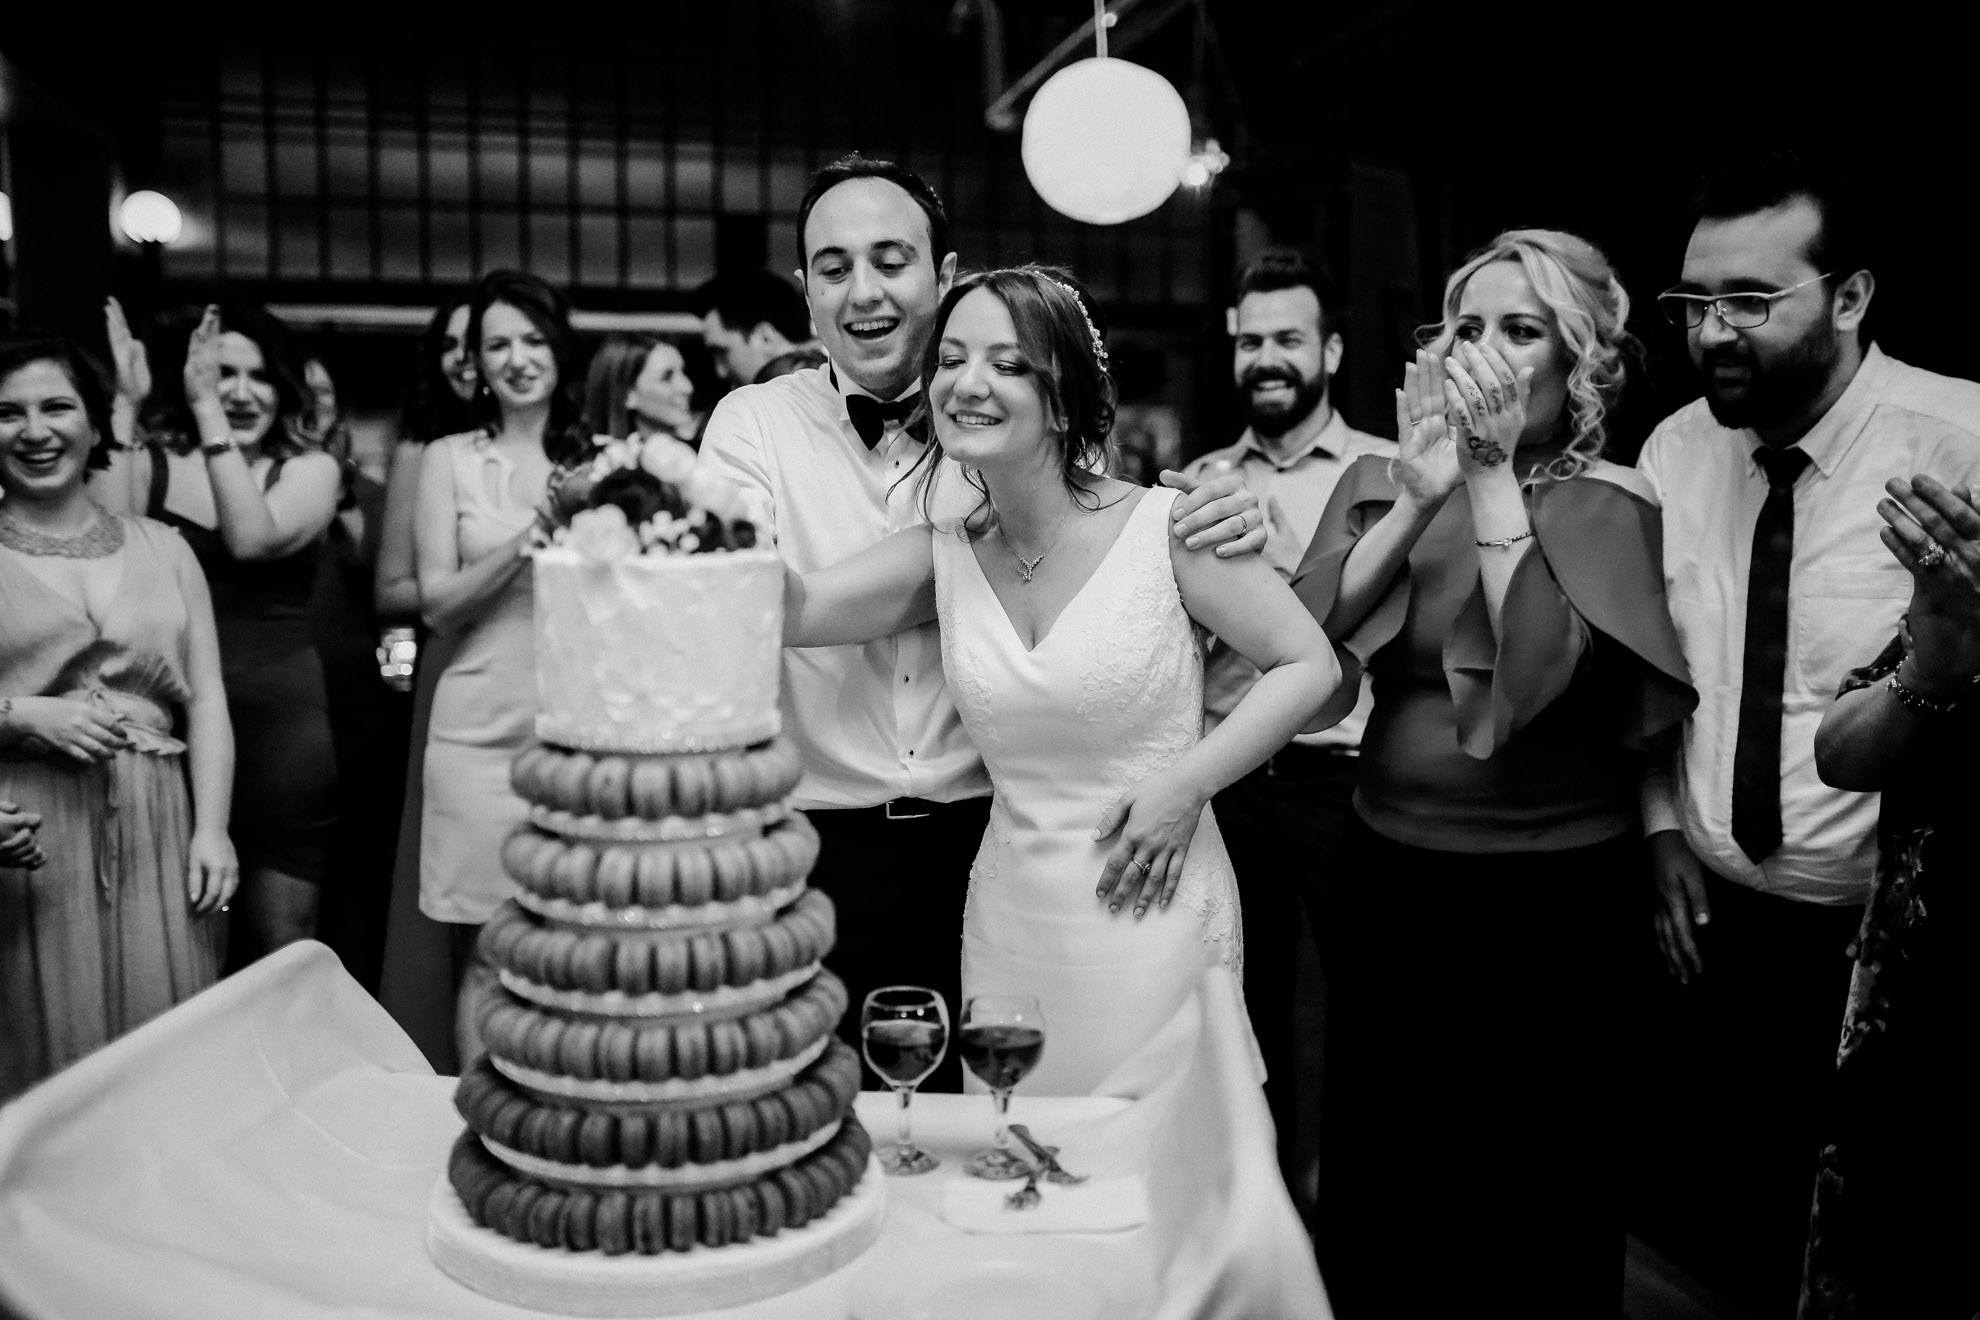 - Pınar + Serdar / 13 May 2017 / BursaDear Serenay,Since the beginning of our wedding planning marathon, I exactly knew that I want to work with you. It was easy to convince Serdar, my husband to be. And then? Just a week before our wedding, when everything related to our wedding plan was tearing down apart, you are the only solid one, that we have left! On our wedding day in May 2017, I realized I am with a friend who supports me during the day and I am with a photography artist who took extremely beautiful shots of us. After the wedding, all the family was talking about your energy and your smile. When we received the photographs, the compliments grew exponentially...Your new models, couples are so lucky, they can enjoy every moment of their special day without worrying but experiencing it.Thank you, SerenayPınar